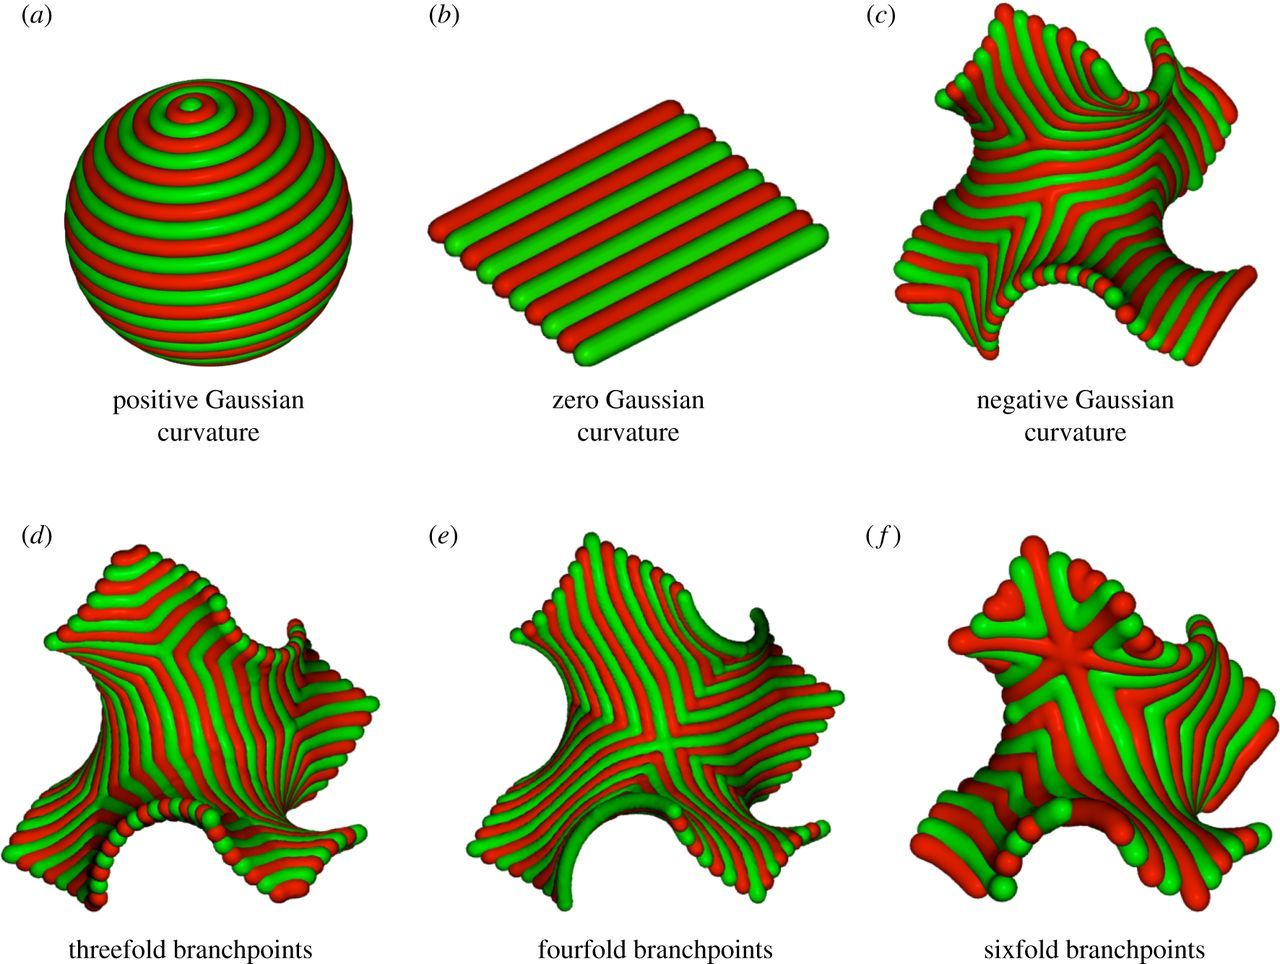 Optimal packings of three-arm star polyphiles: from